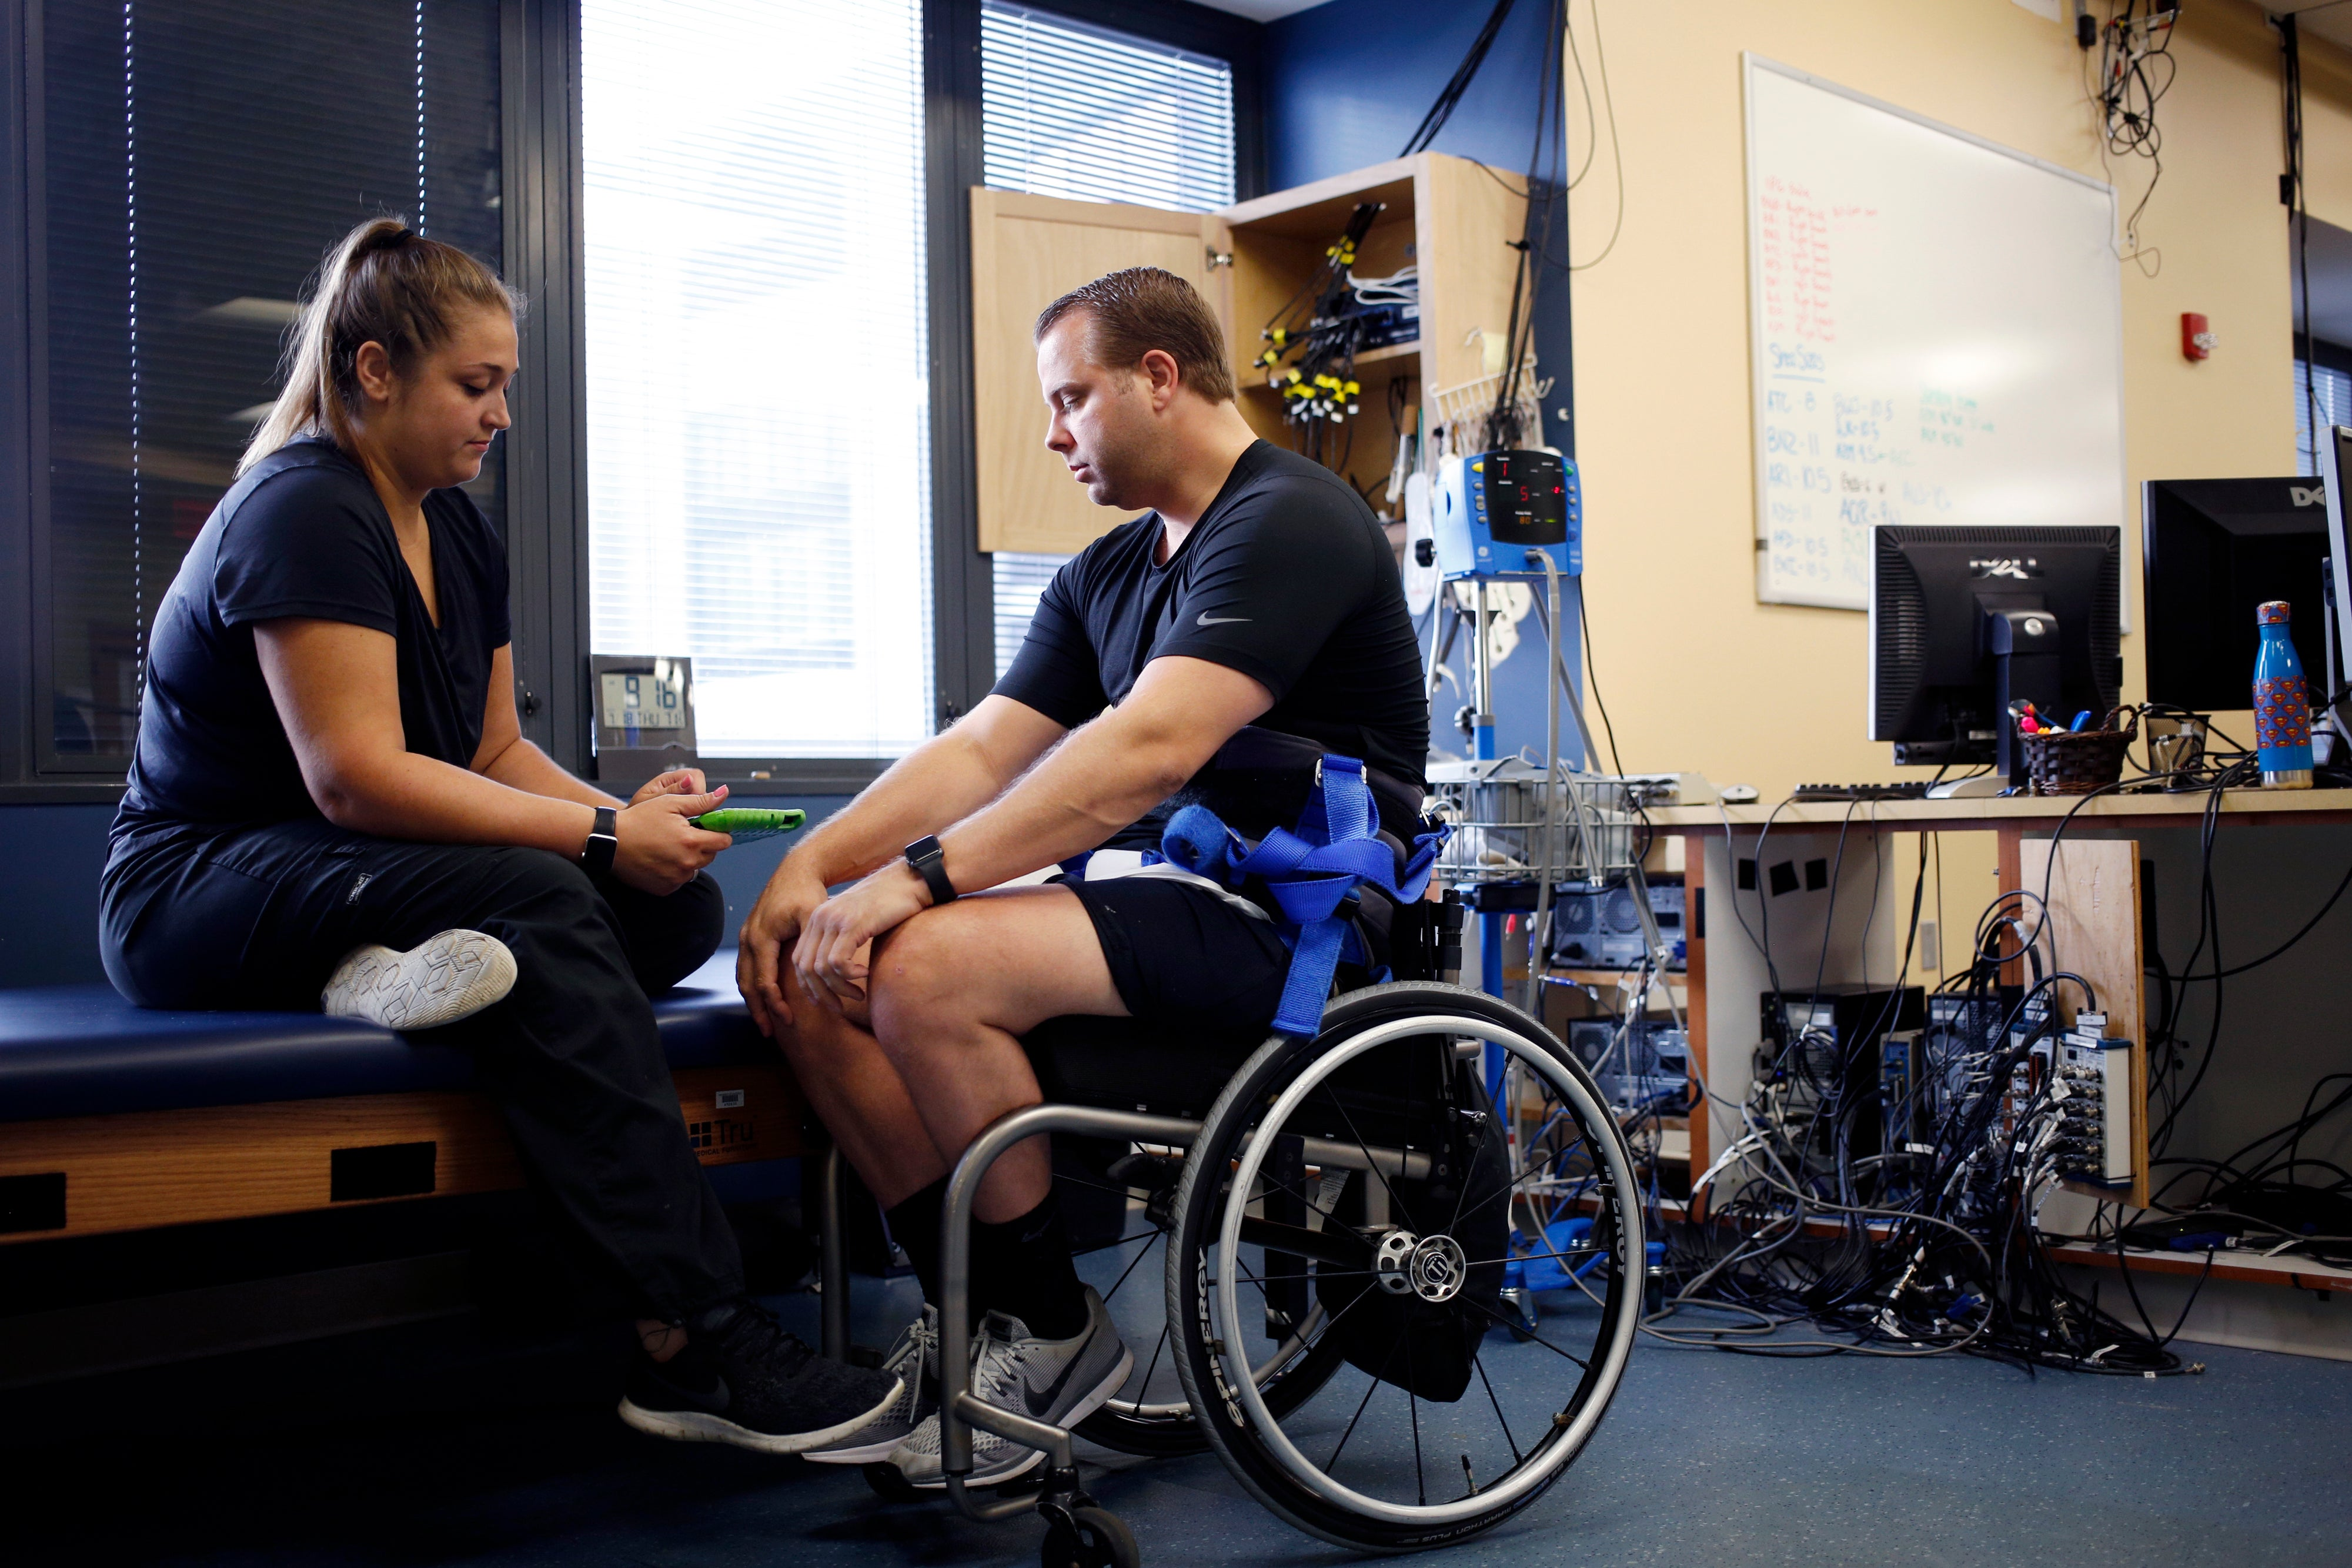 Making love with her hot paralyzed legs How A Revolutionary Technique Got People With Spinal Cord Injuries Back On Their Feet Scientific American